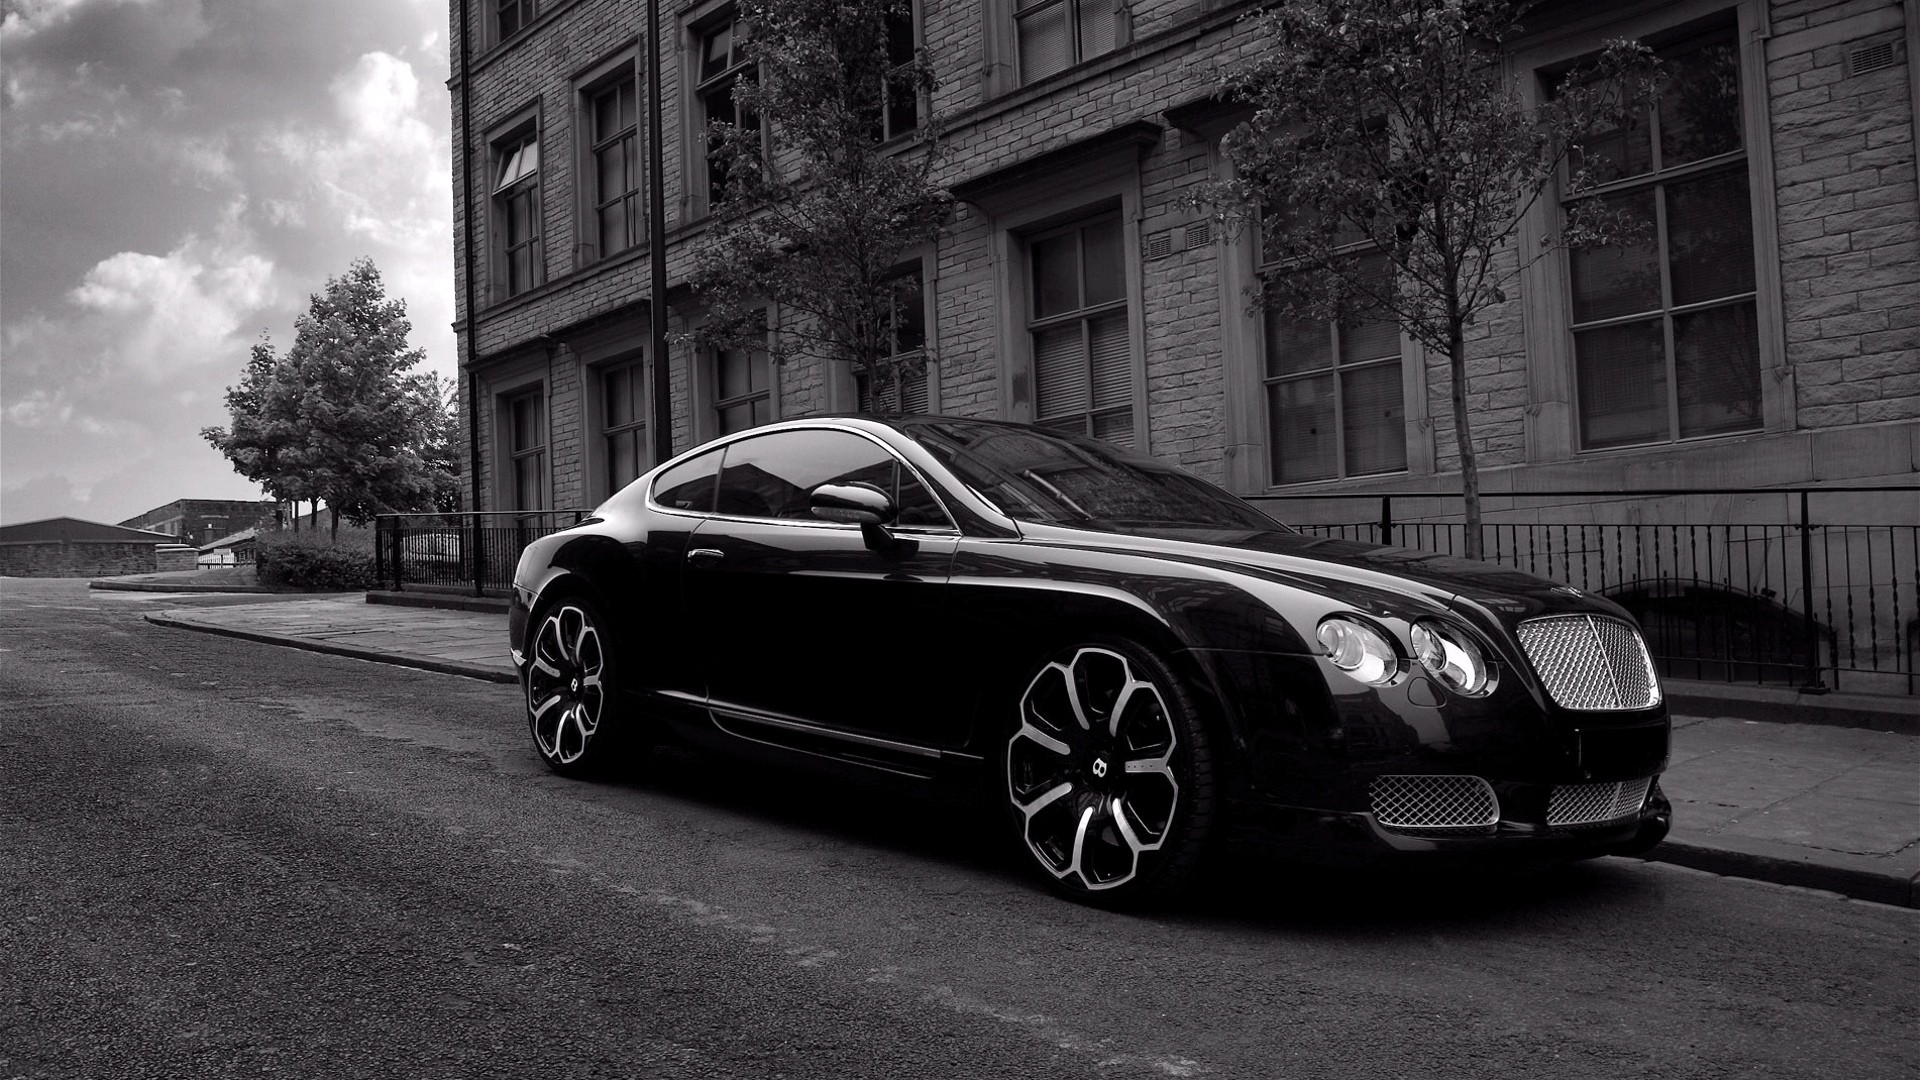 Bentley Wallpaper Black Color Cars